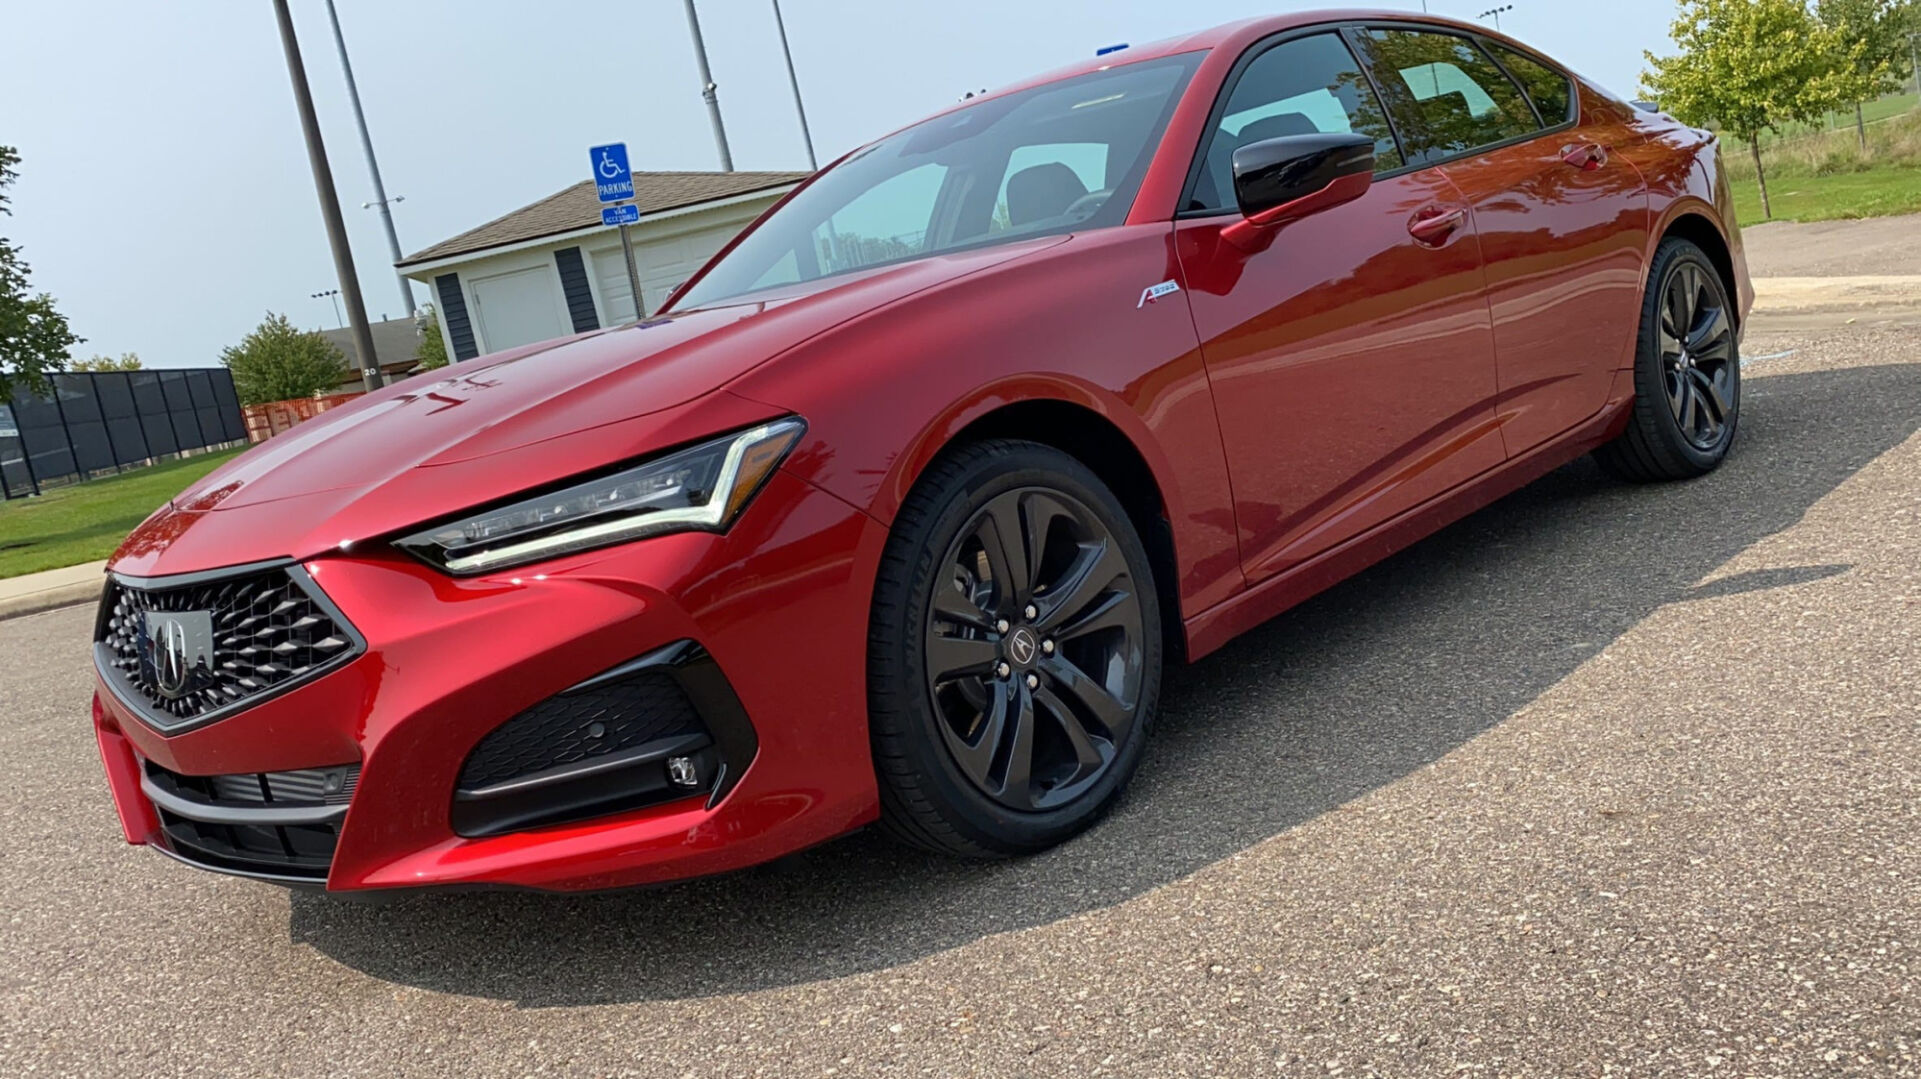 2021 Acura Tlx Rides New Platform To Become Brand S Best Sedan In Decades Business Nny360 Com